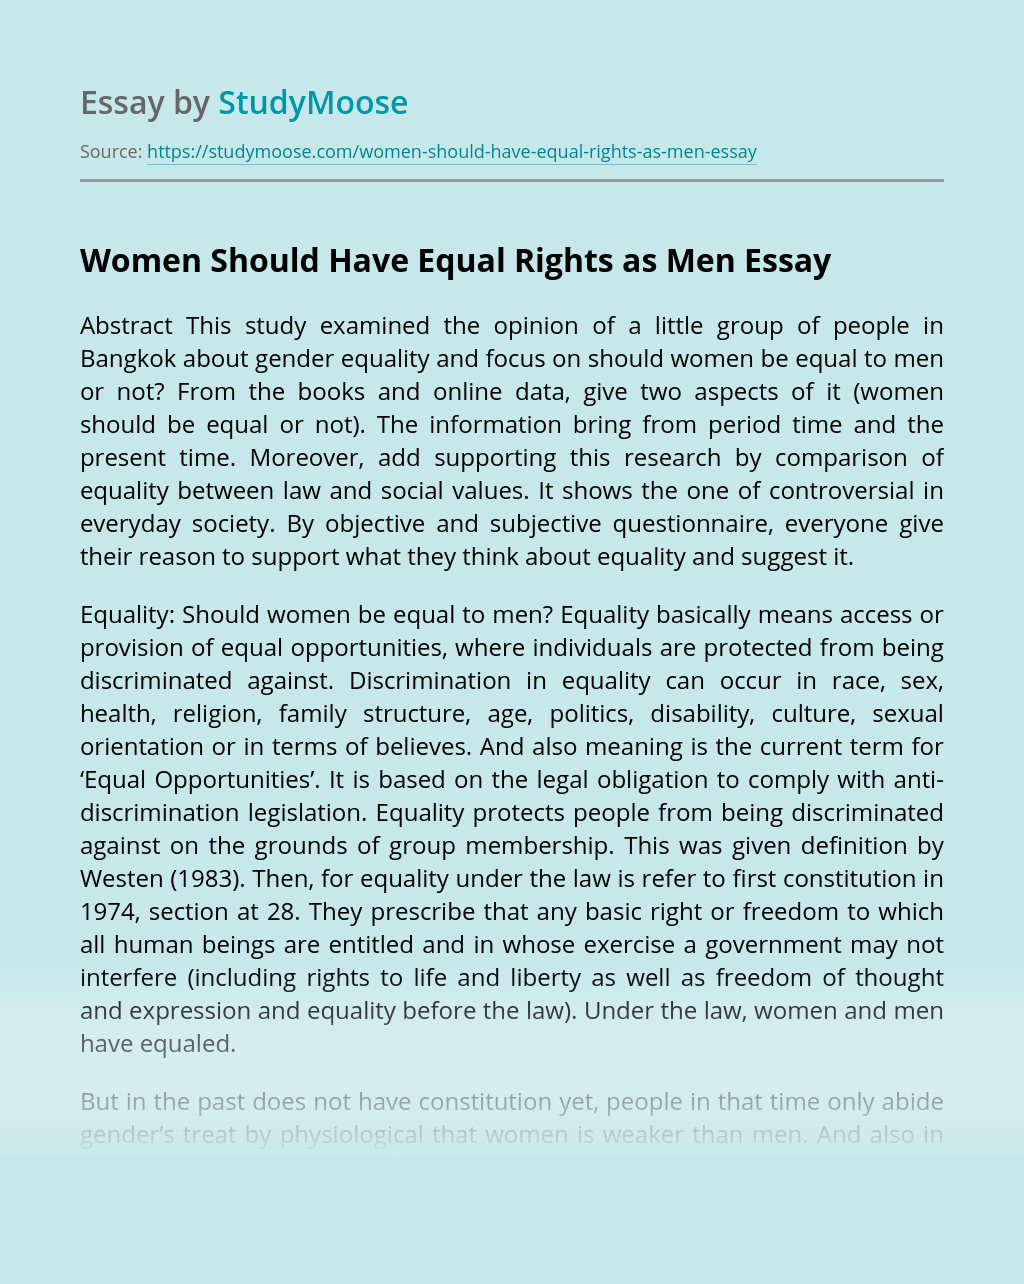 Women Should Have Equal Rights as Men